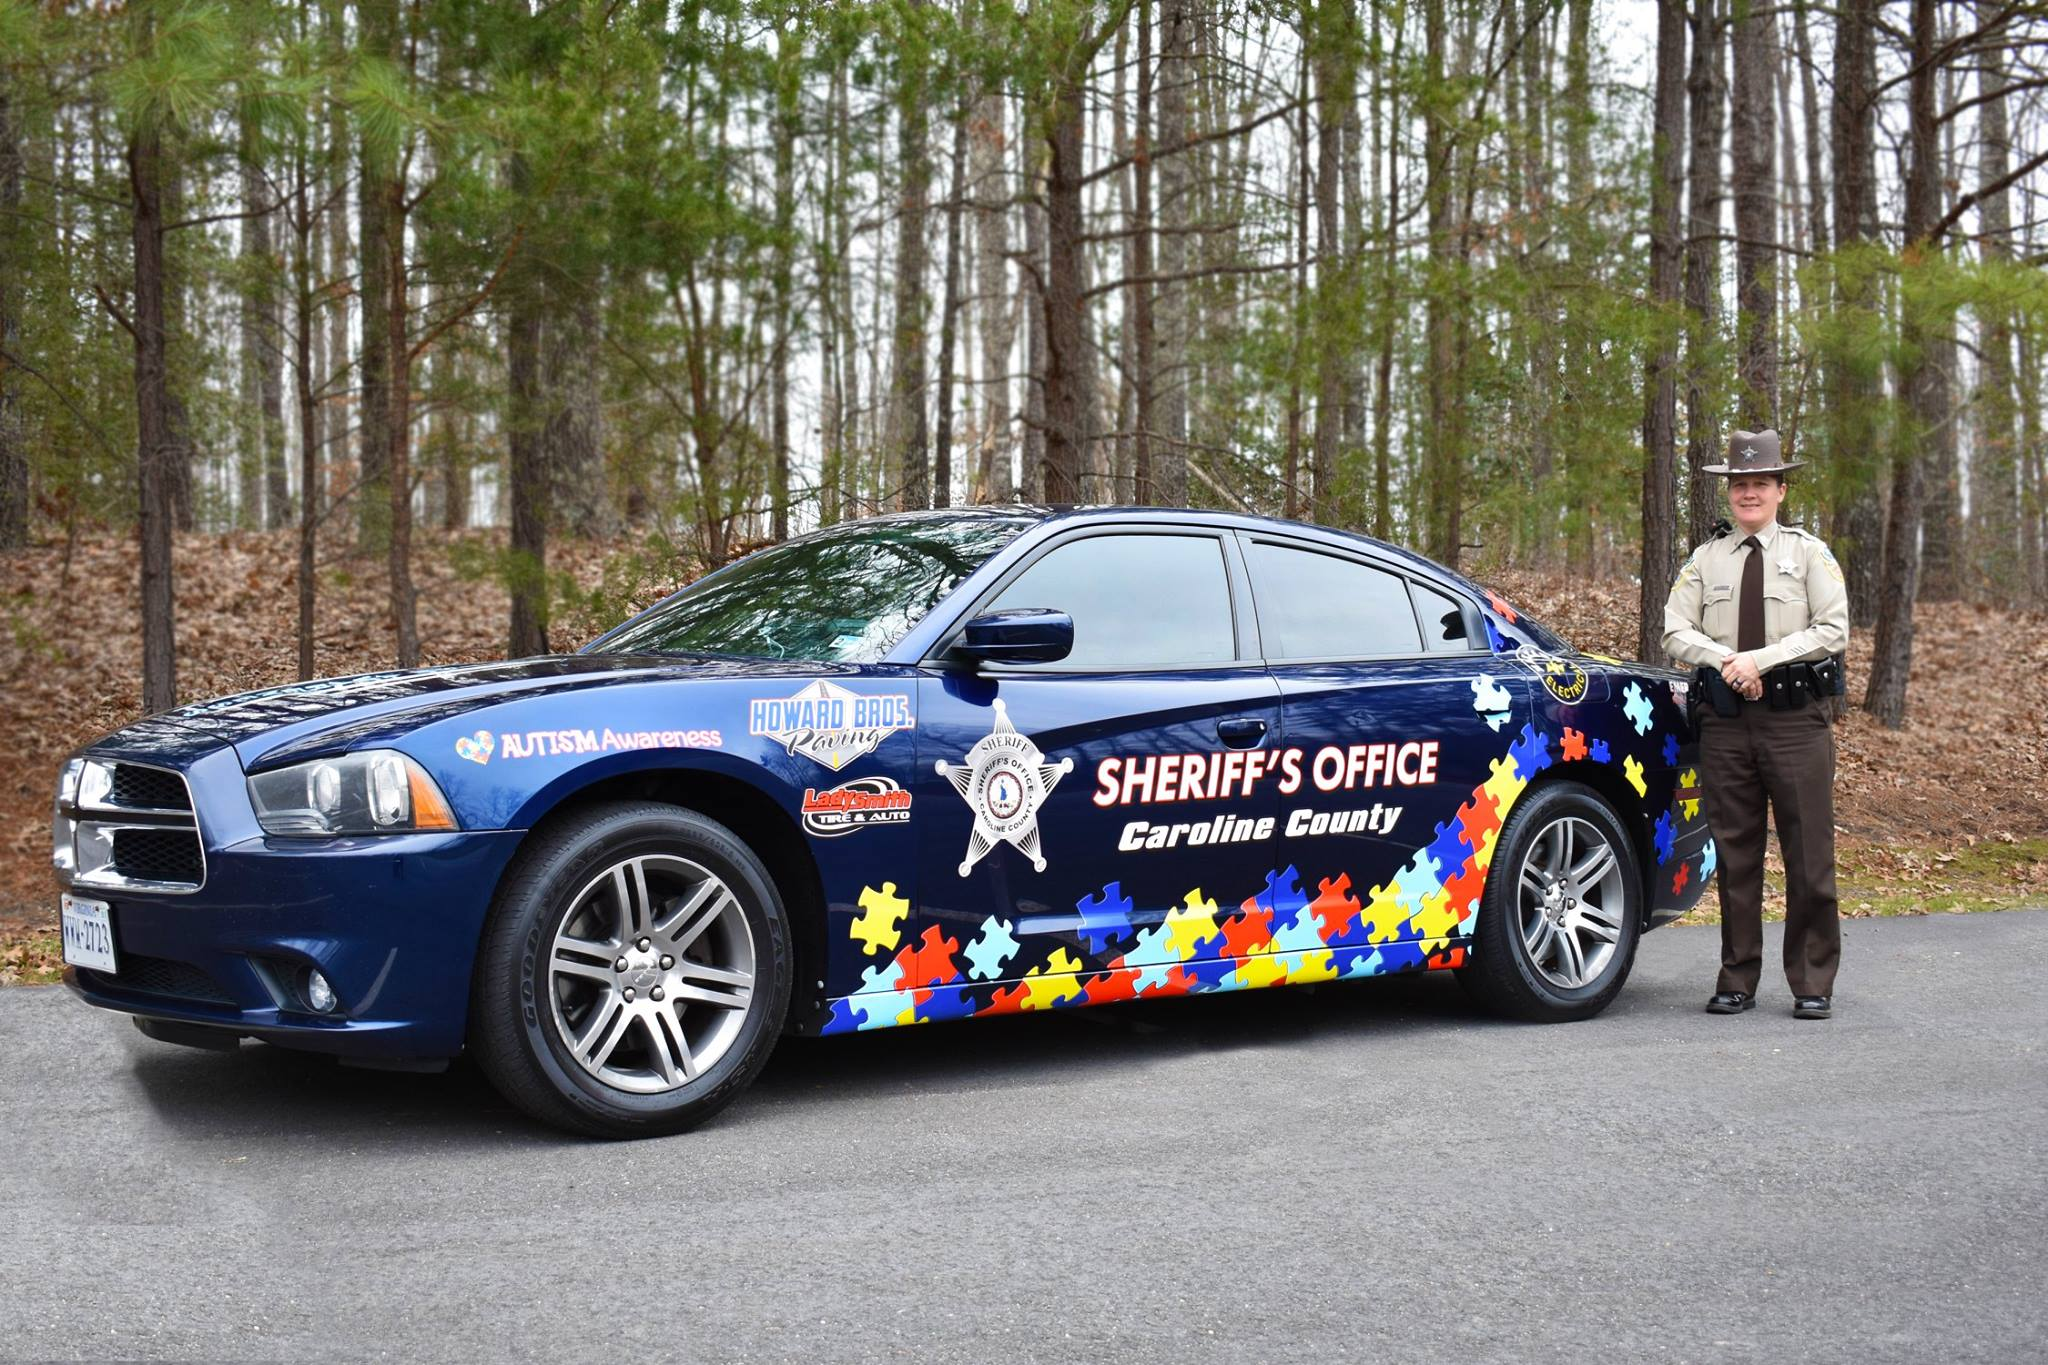 Caroline County Sheriff's Office car to highlight Autism Awareness